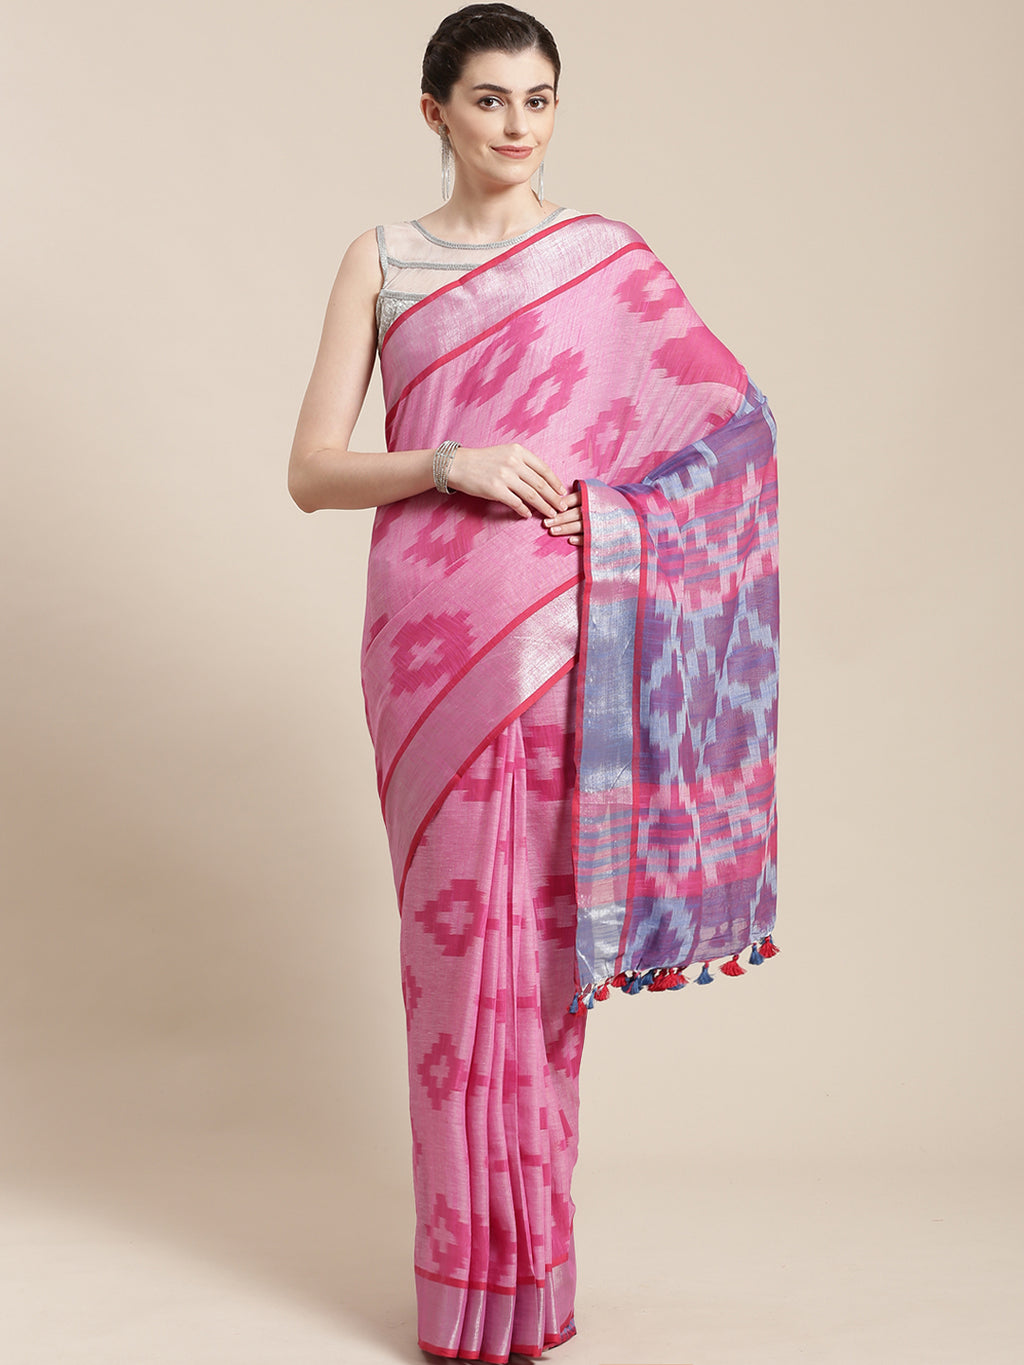 Linen Handwoven Saree and Blouse-Saree-Kalakari India-ALBGSA0043-Hand Woven, Linen, Sarees, Sustainable Fabrics, Traditional Weave-[Linen,Ethnic,wear,Fashionista,Handloom,Handicraft,Indigo,blockprint,block,print,Cotton,Chanderi,Blue, latest,classy,party,bollywood,trendy,summer,style,traditional,formal,elegant,unique,style,hand,block,print, dabu,booti,gift,present,glamorous,affordable,collectible,Sari,Saree,printed, holi, Diwali, birthday, anniversary, sustainable, organic, scarf, online, low pri